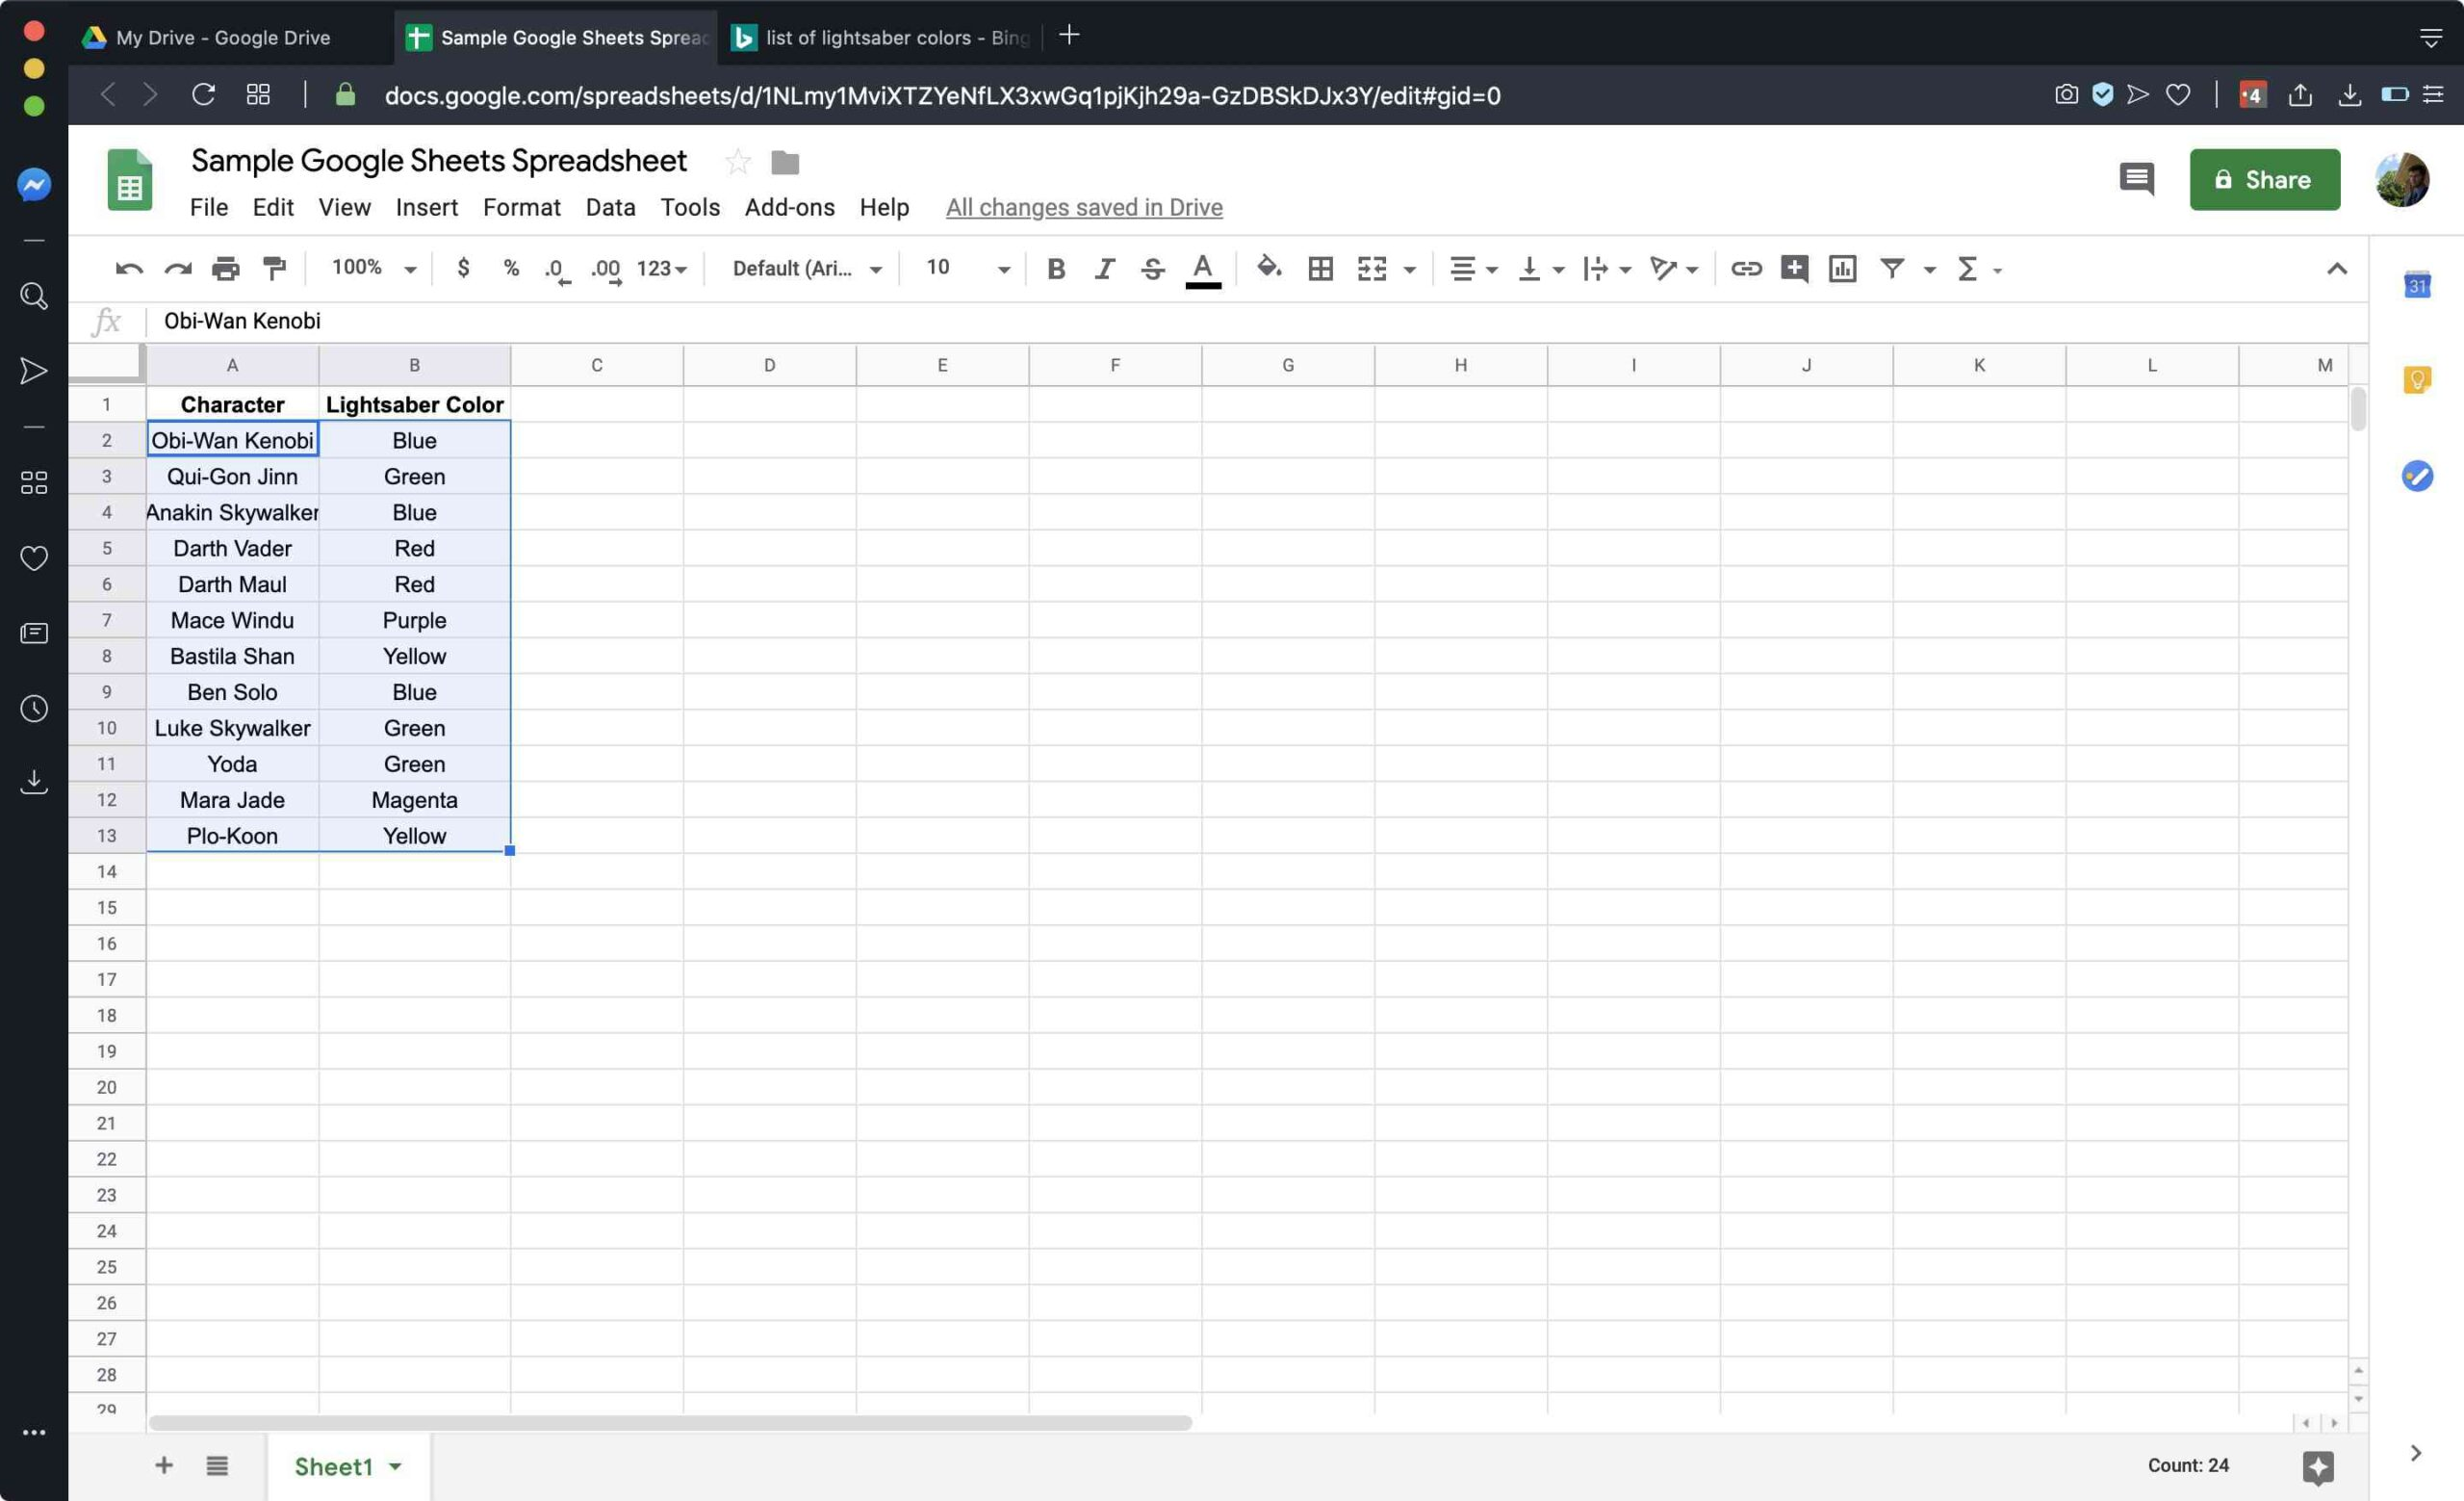 Full Size of Spreadsheets Free Cash Flow Spreadsheet Daily Health Insurance Online